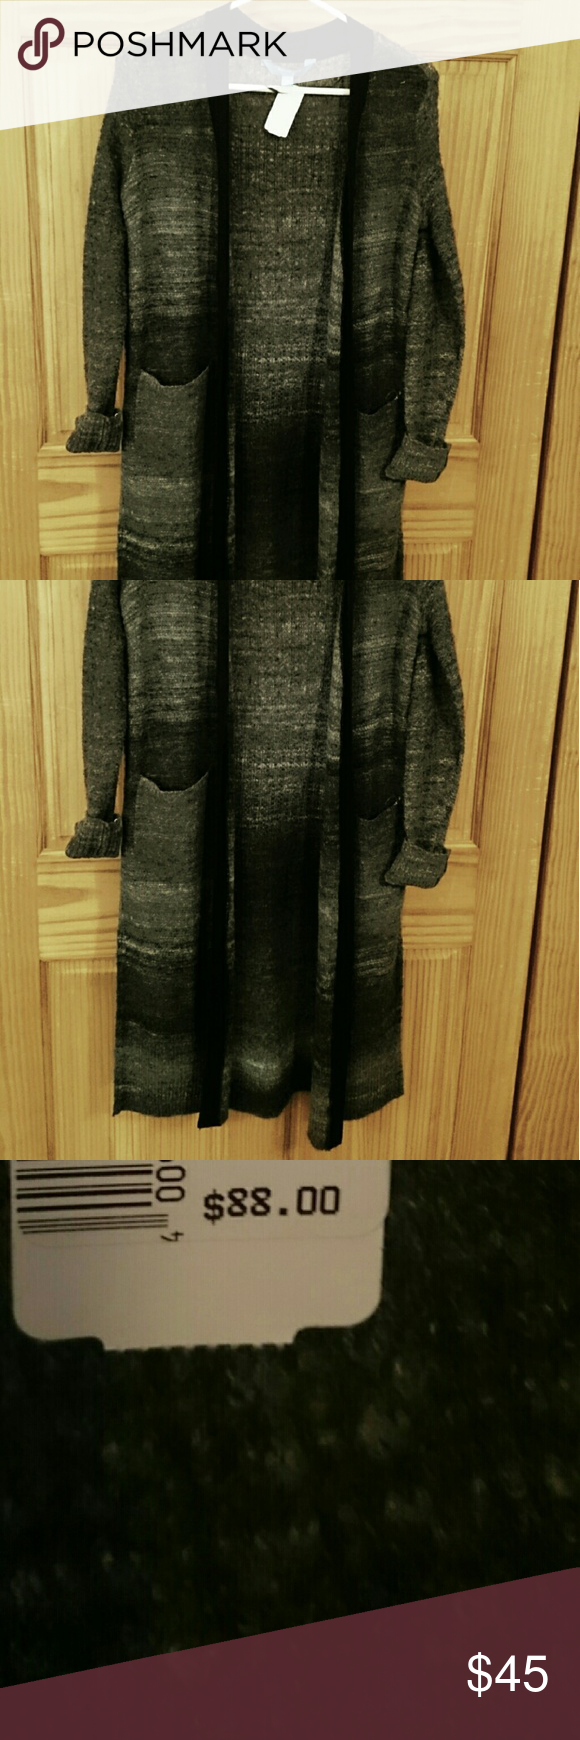 Long Cardigan Size XS New With tags Size XS Very comfy and Cute!  Fits long!  Has slits on side of cardigan Vera Wang Sweaters Cardigans